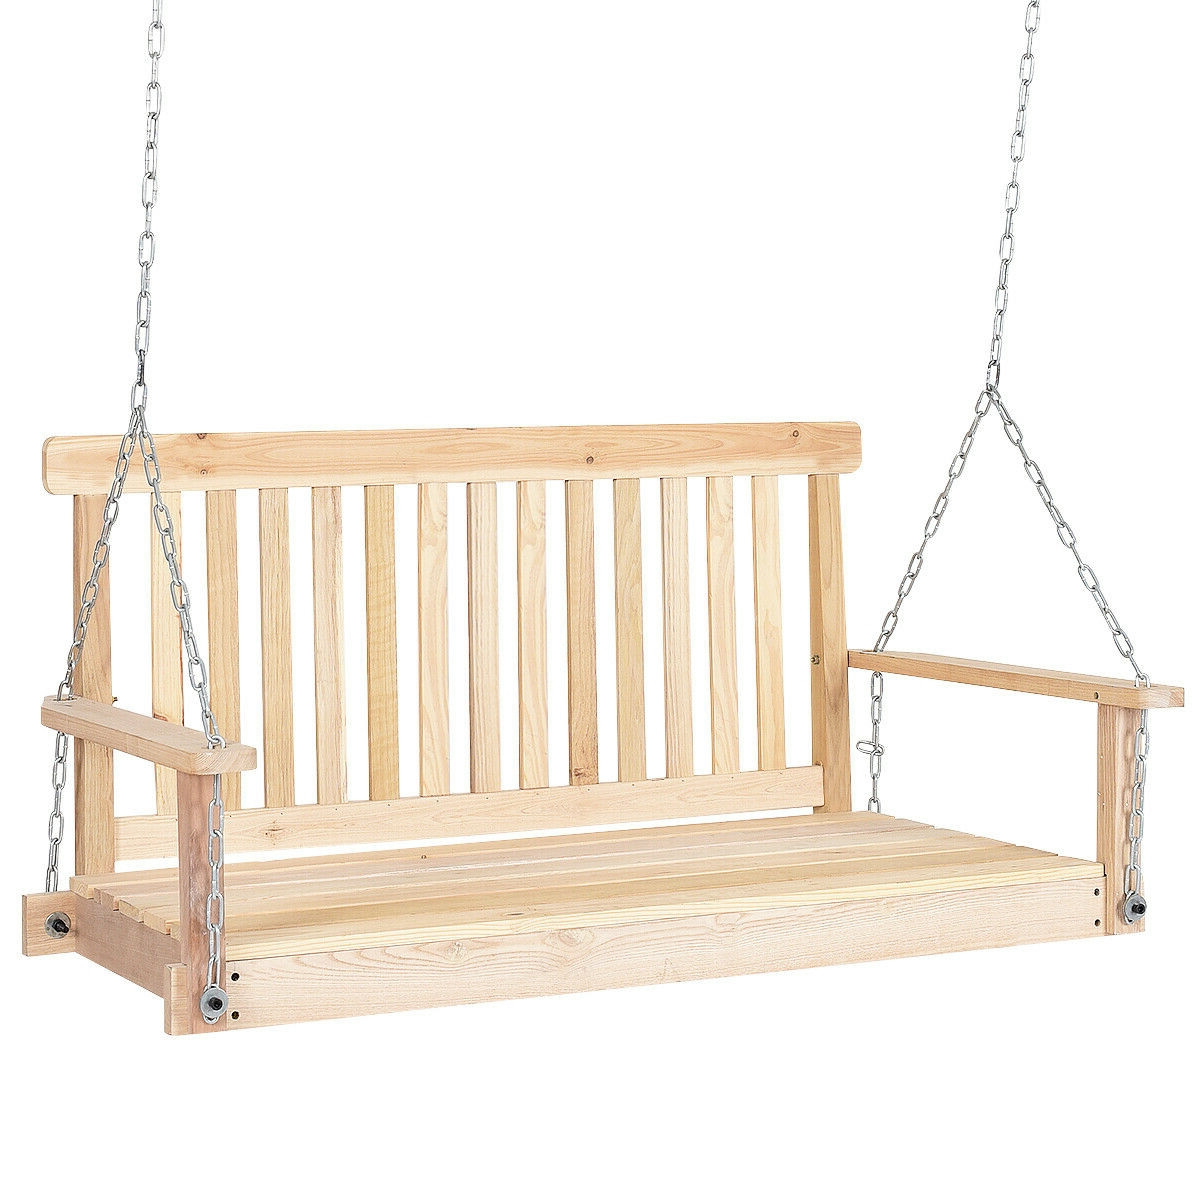 Most Recent Porch Swings With Chain Pertaining To 4' Wood Garden Hanging Seat Chains Porch Swing (Gallery 19 of 26)